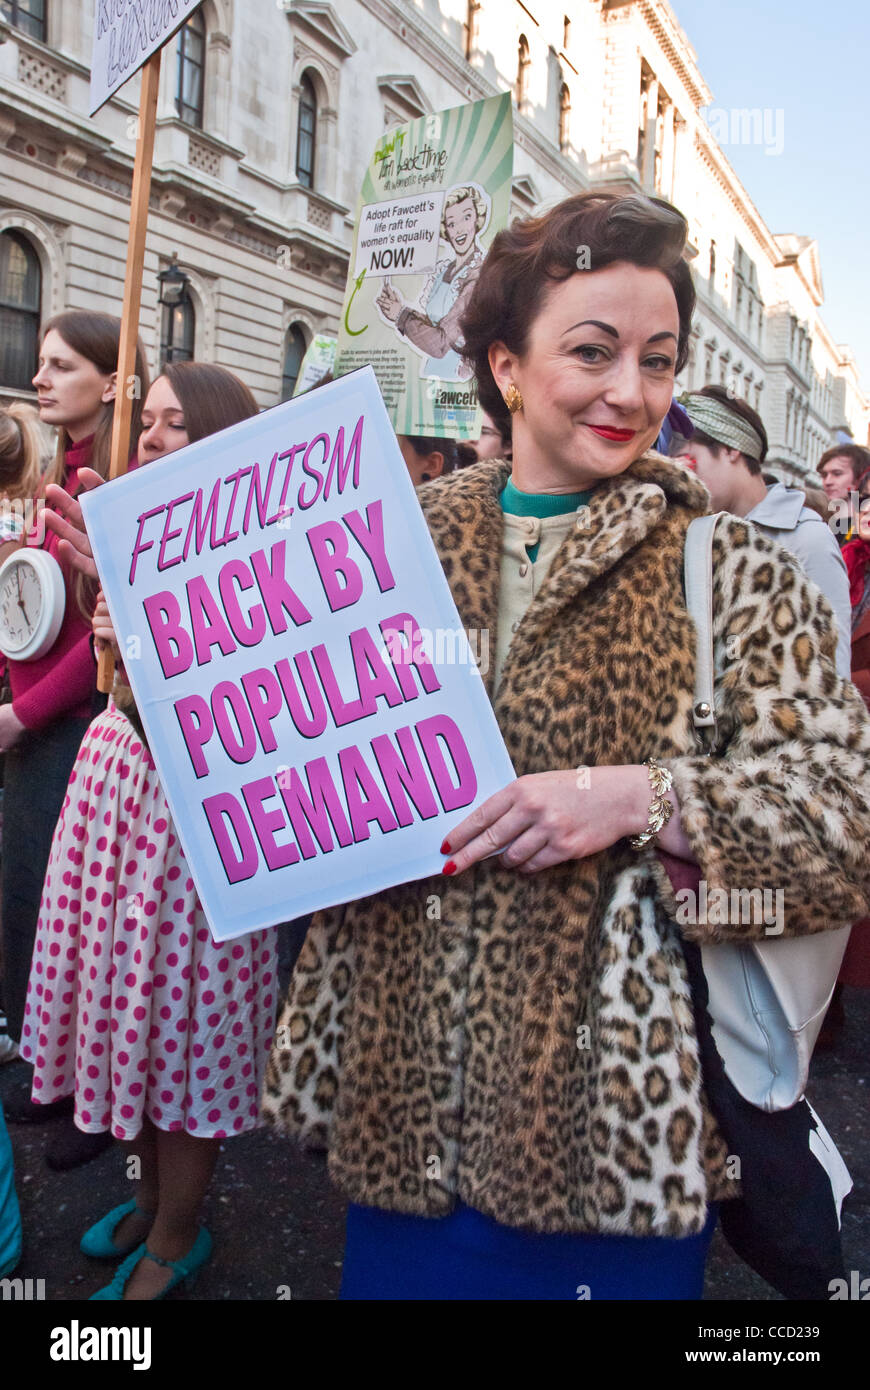 Placard 'Feminism, back by popular demand' held by smiling woman dressed in 1950s faux leopard clothes, - Stock Image